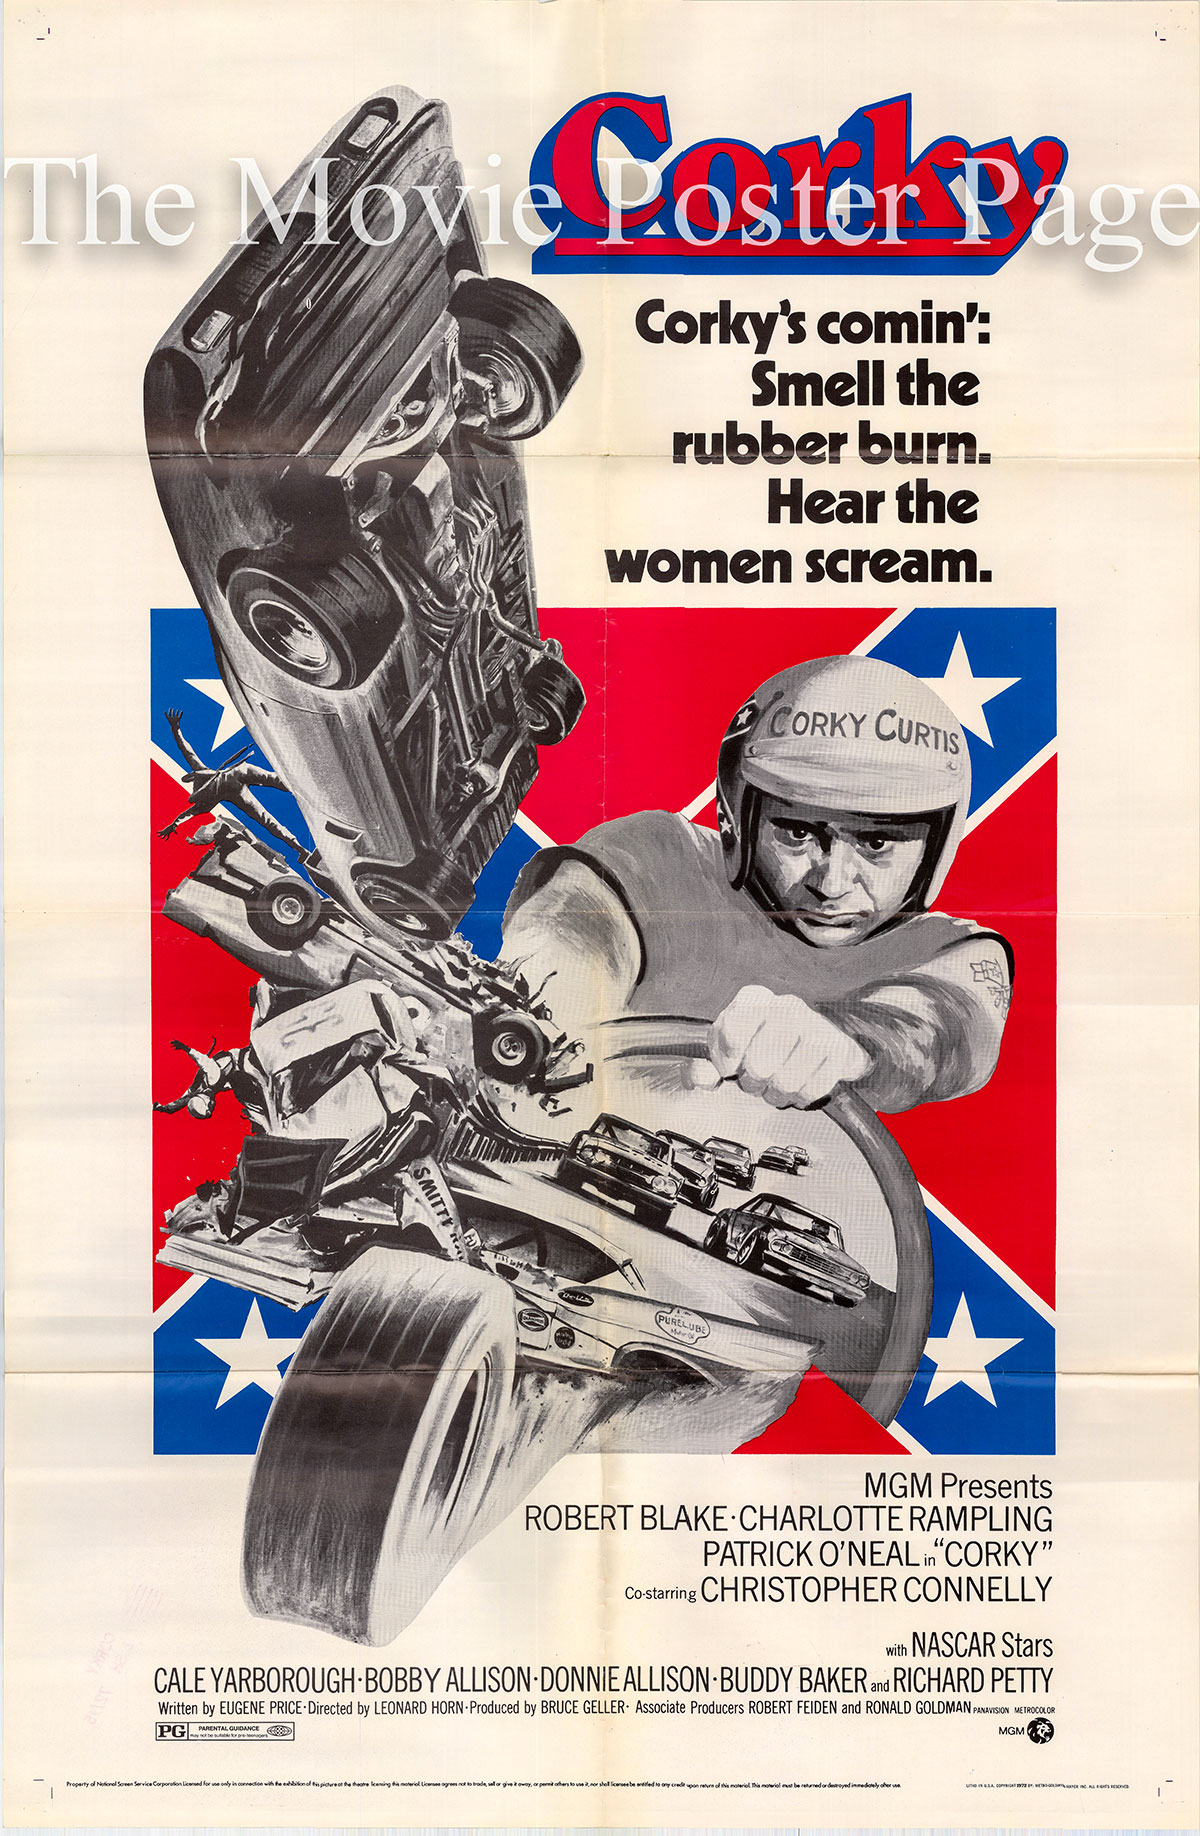 Pictured is a US one-sheet poster for the 1972 Leonard Horn film Corky starring Robert Blake as Corky Curtiss.